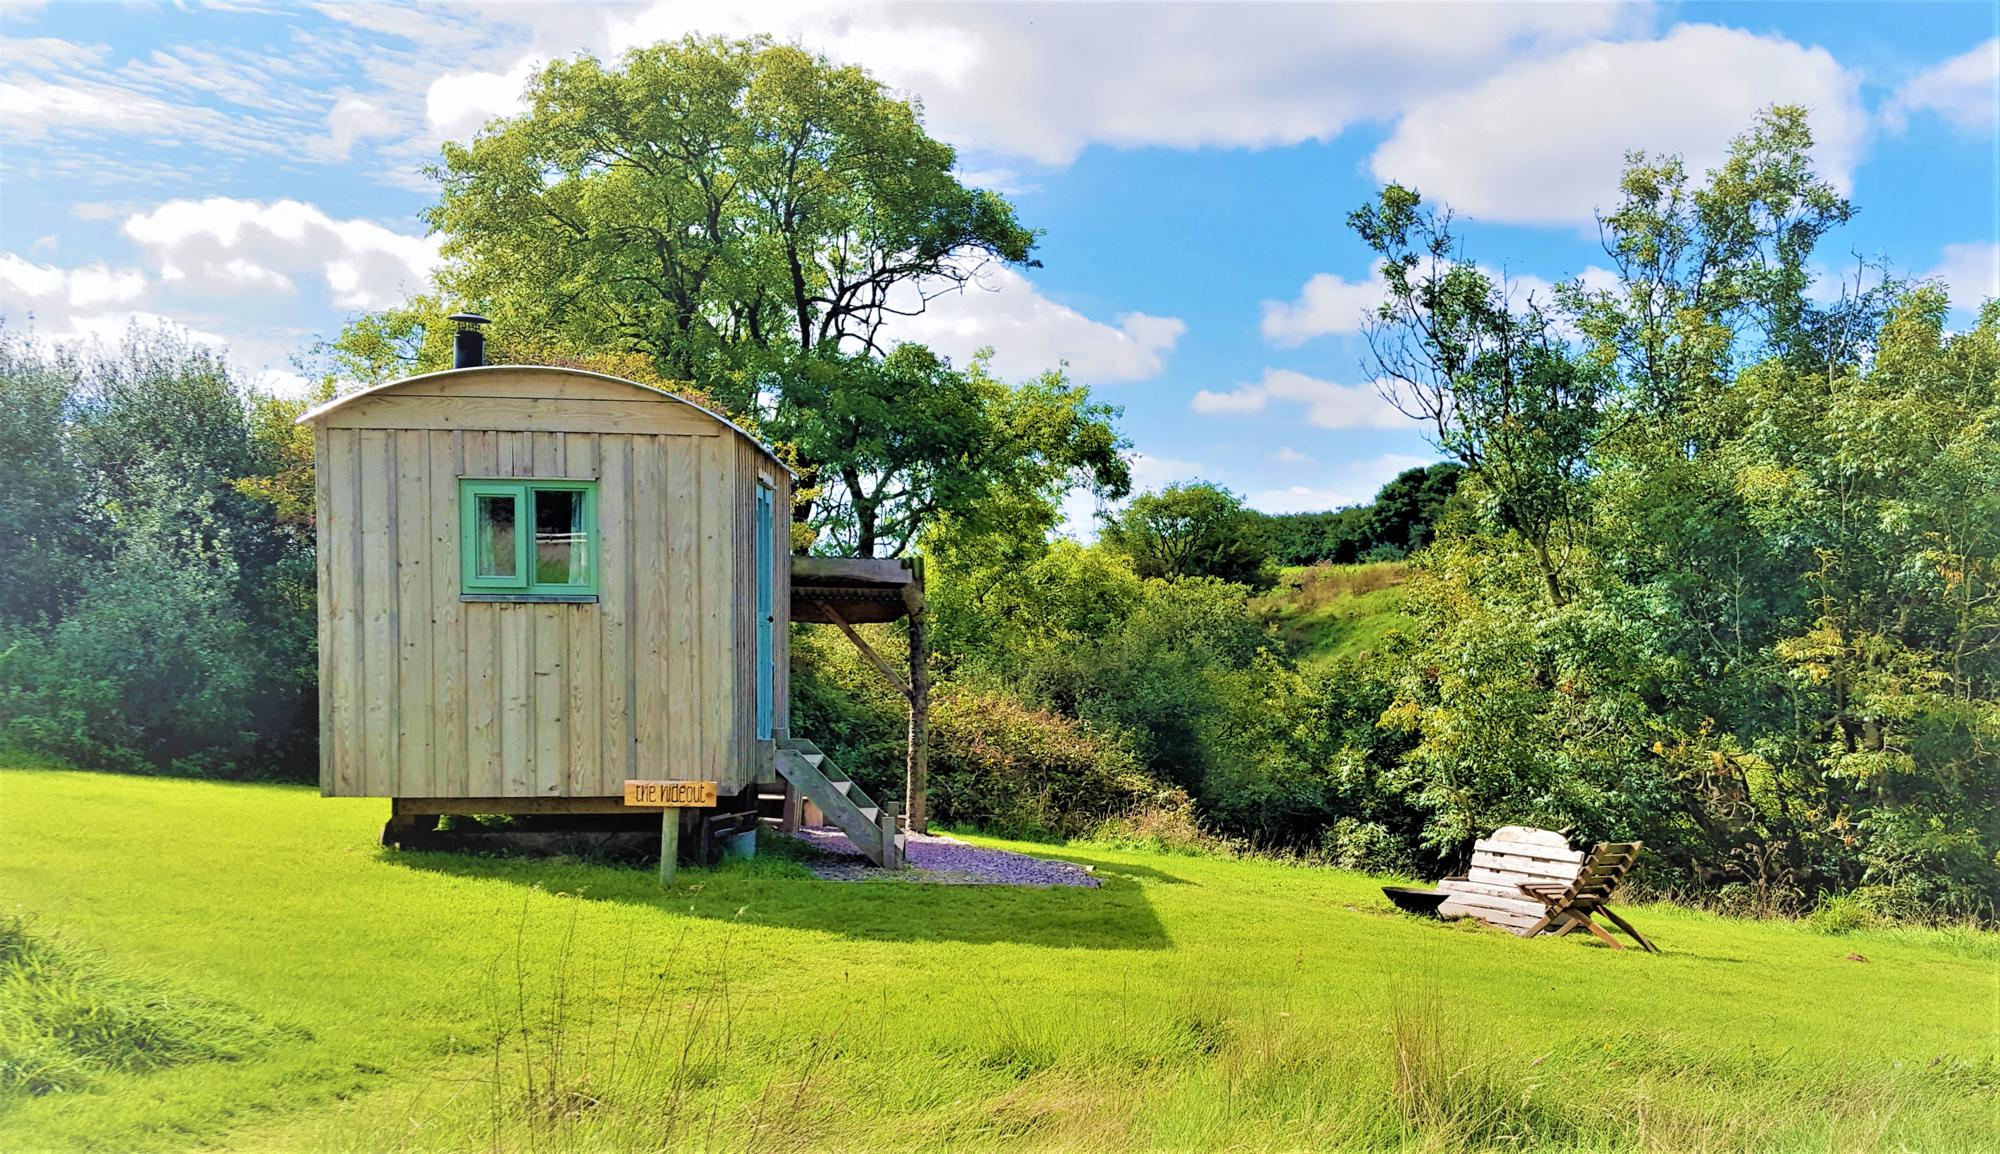 Campsites in South West England holidays at Glampingly